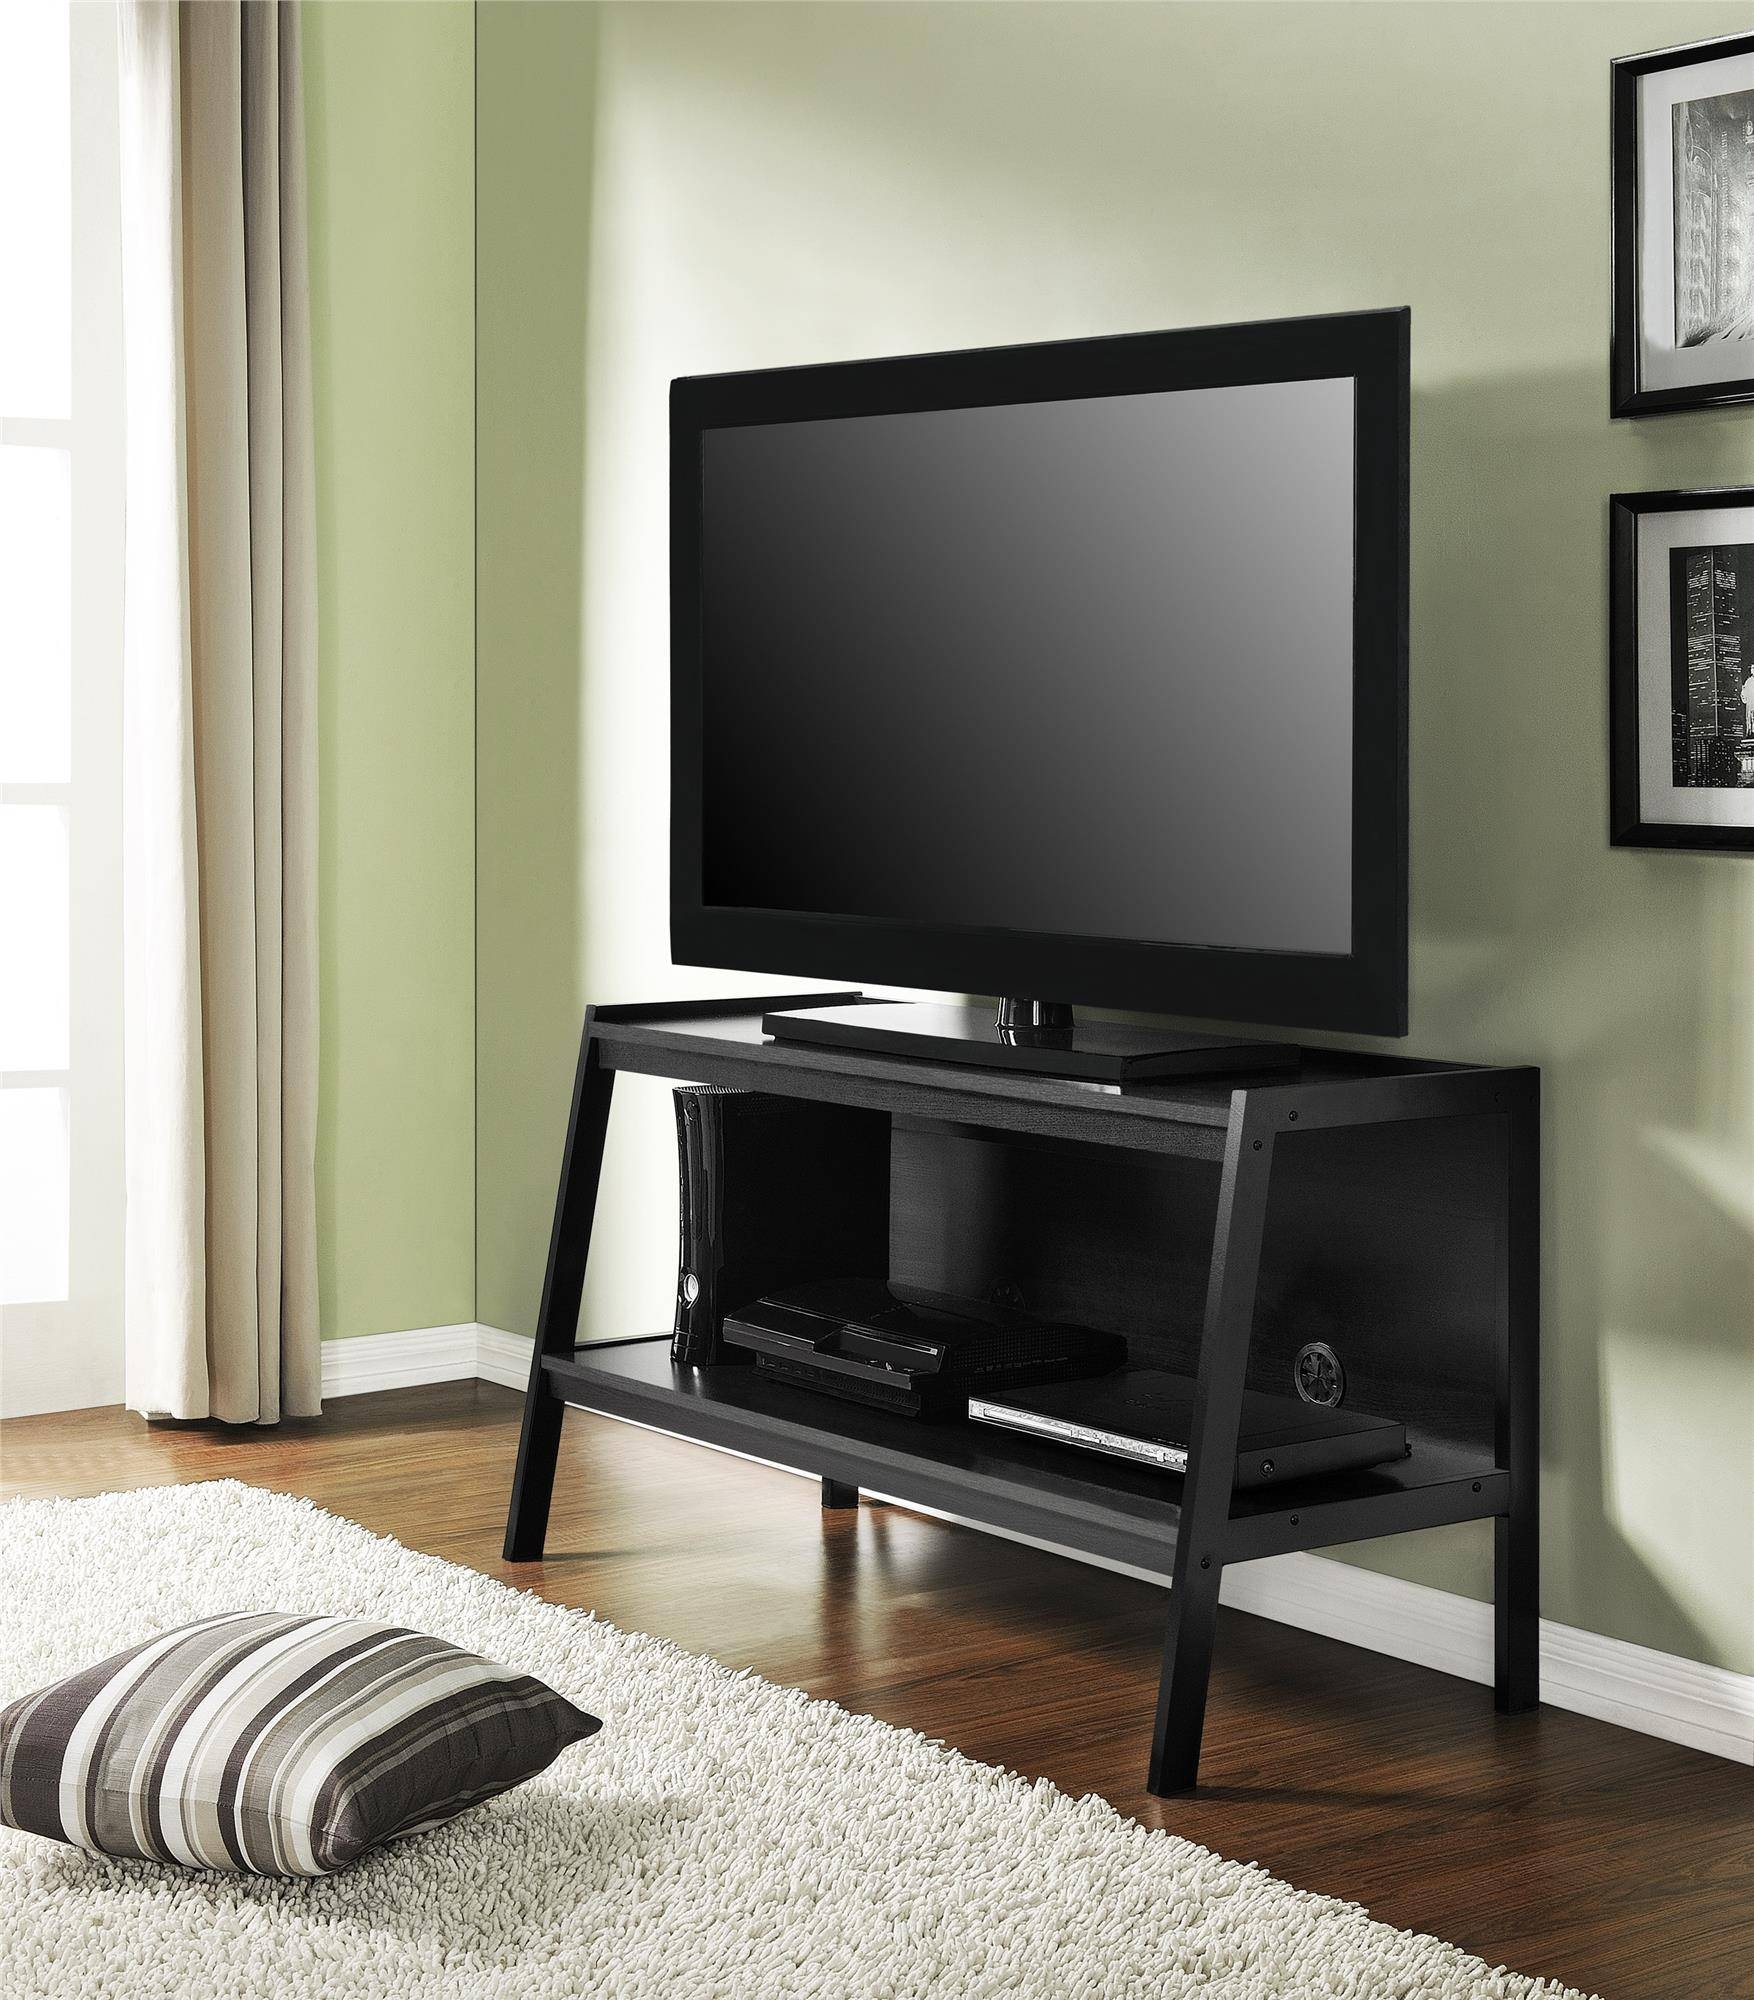 Furniture: Cymax Tv Stands | Lowes Tv Stands | Corner Tv Stand 47 regarding 24 Inch Corner Tv Stands (Image 4 of 15)